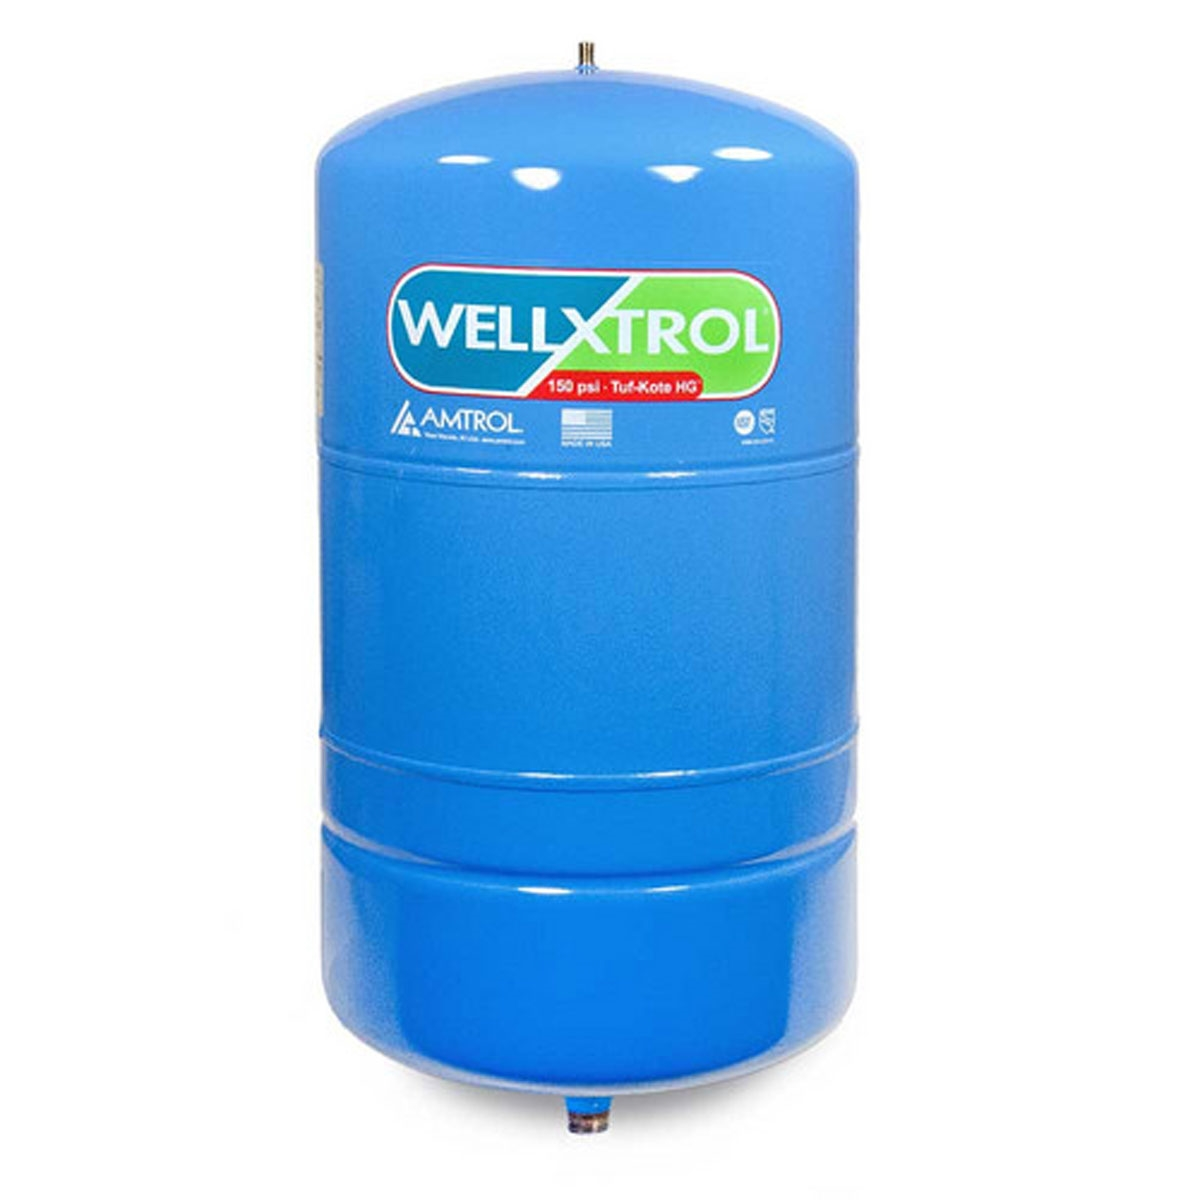 Inline Expansion Tank : Well trol inline tank quot gallon wx